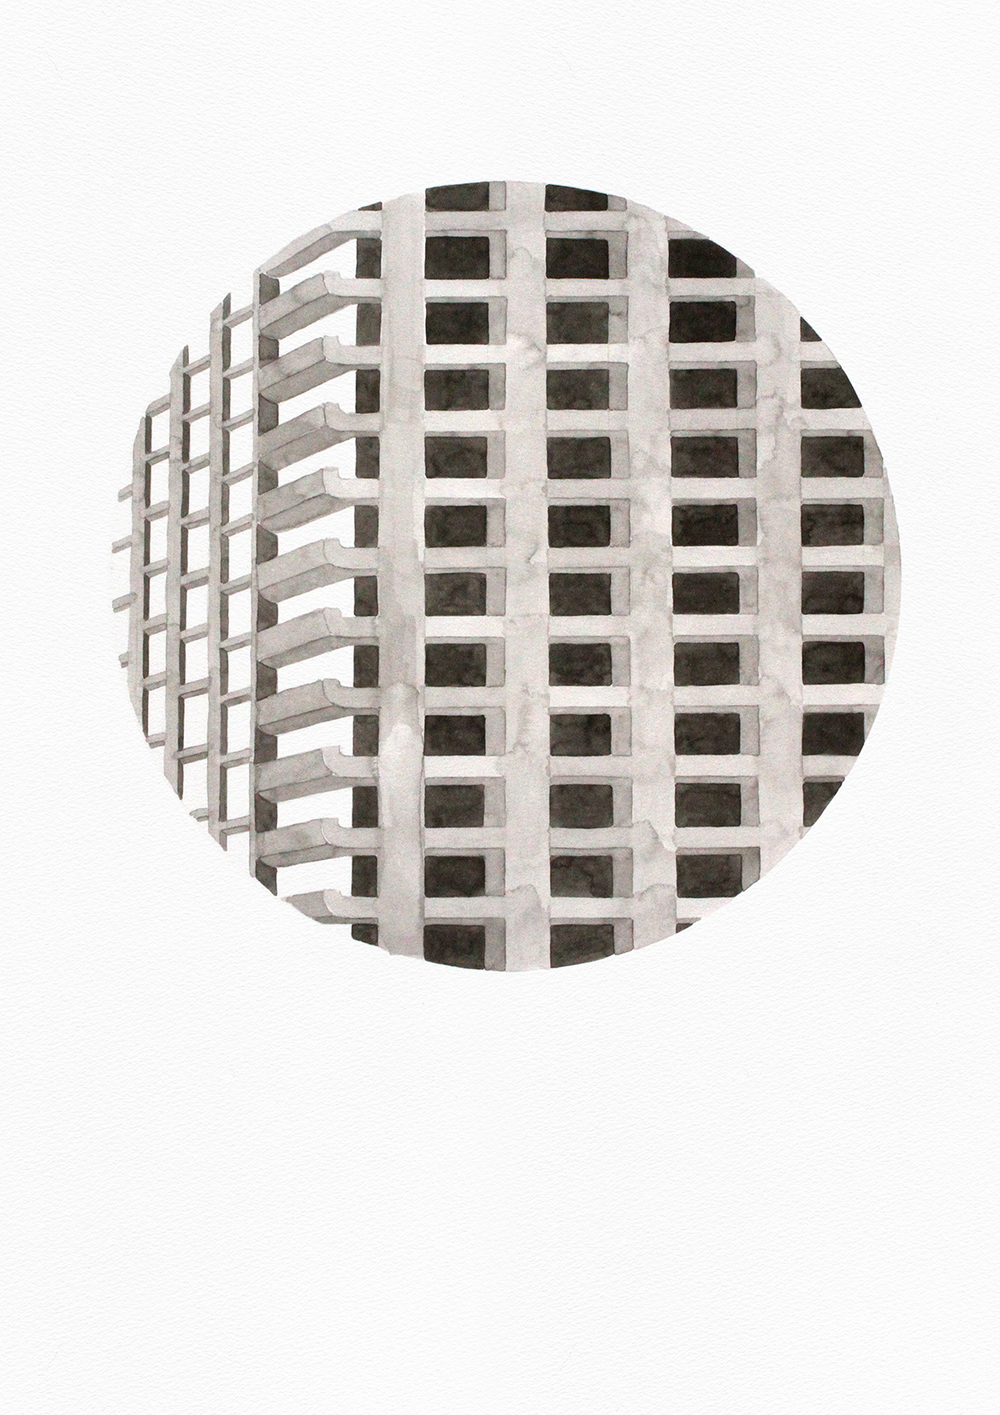 London Exhibition 2015 – Pattern of the City